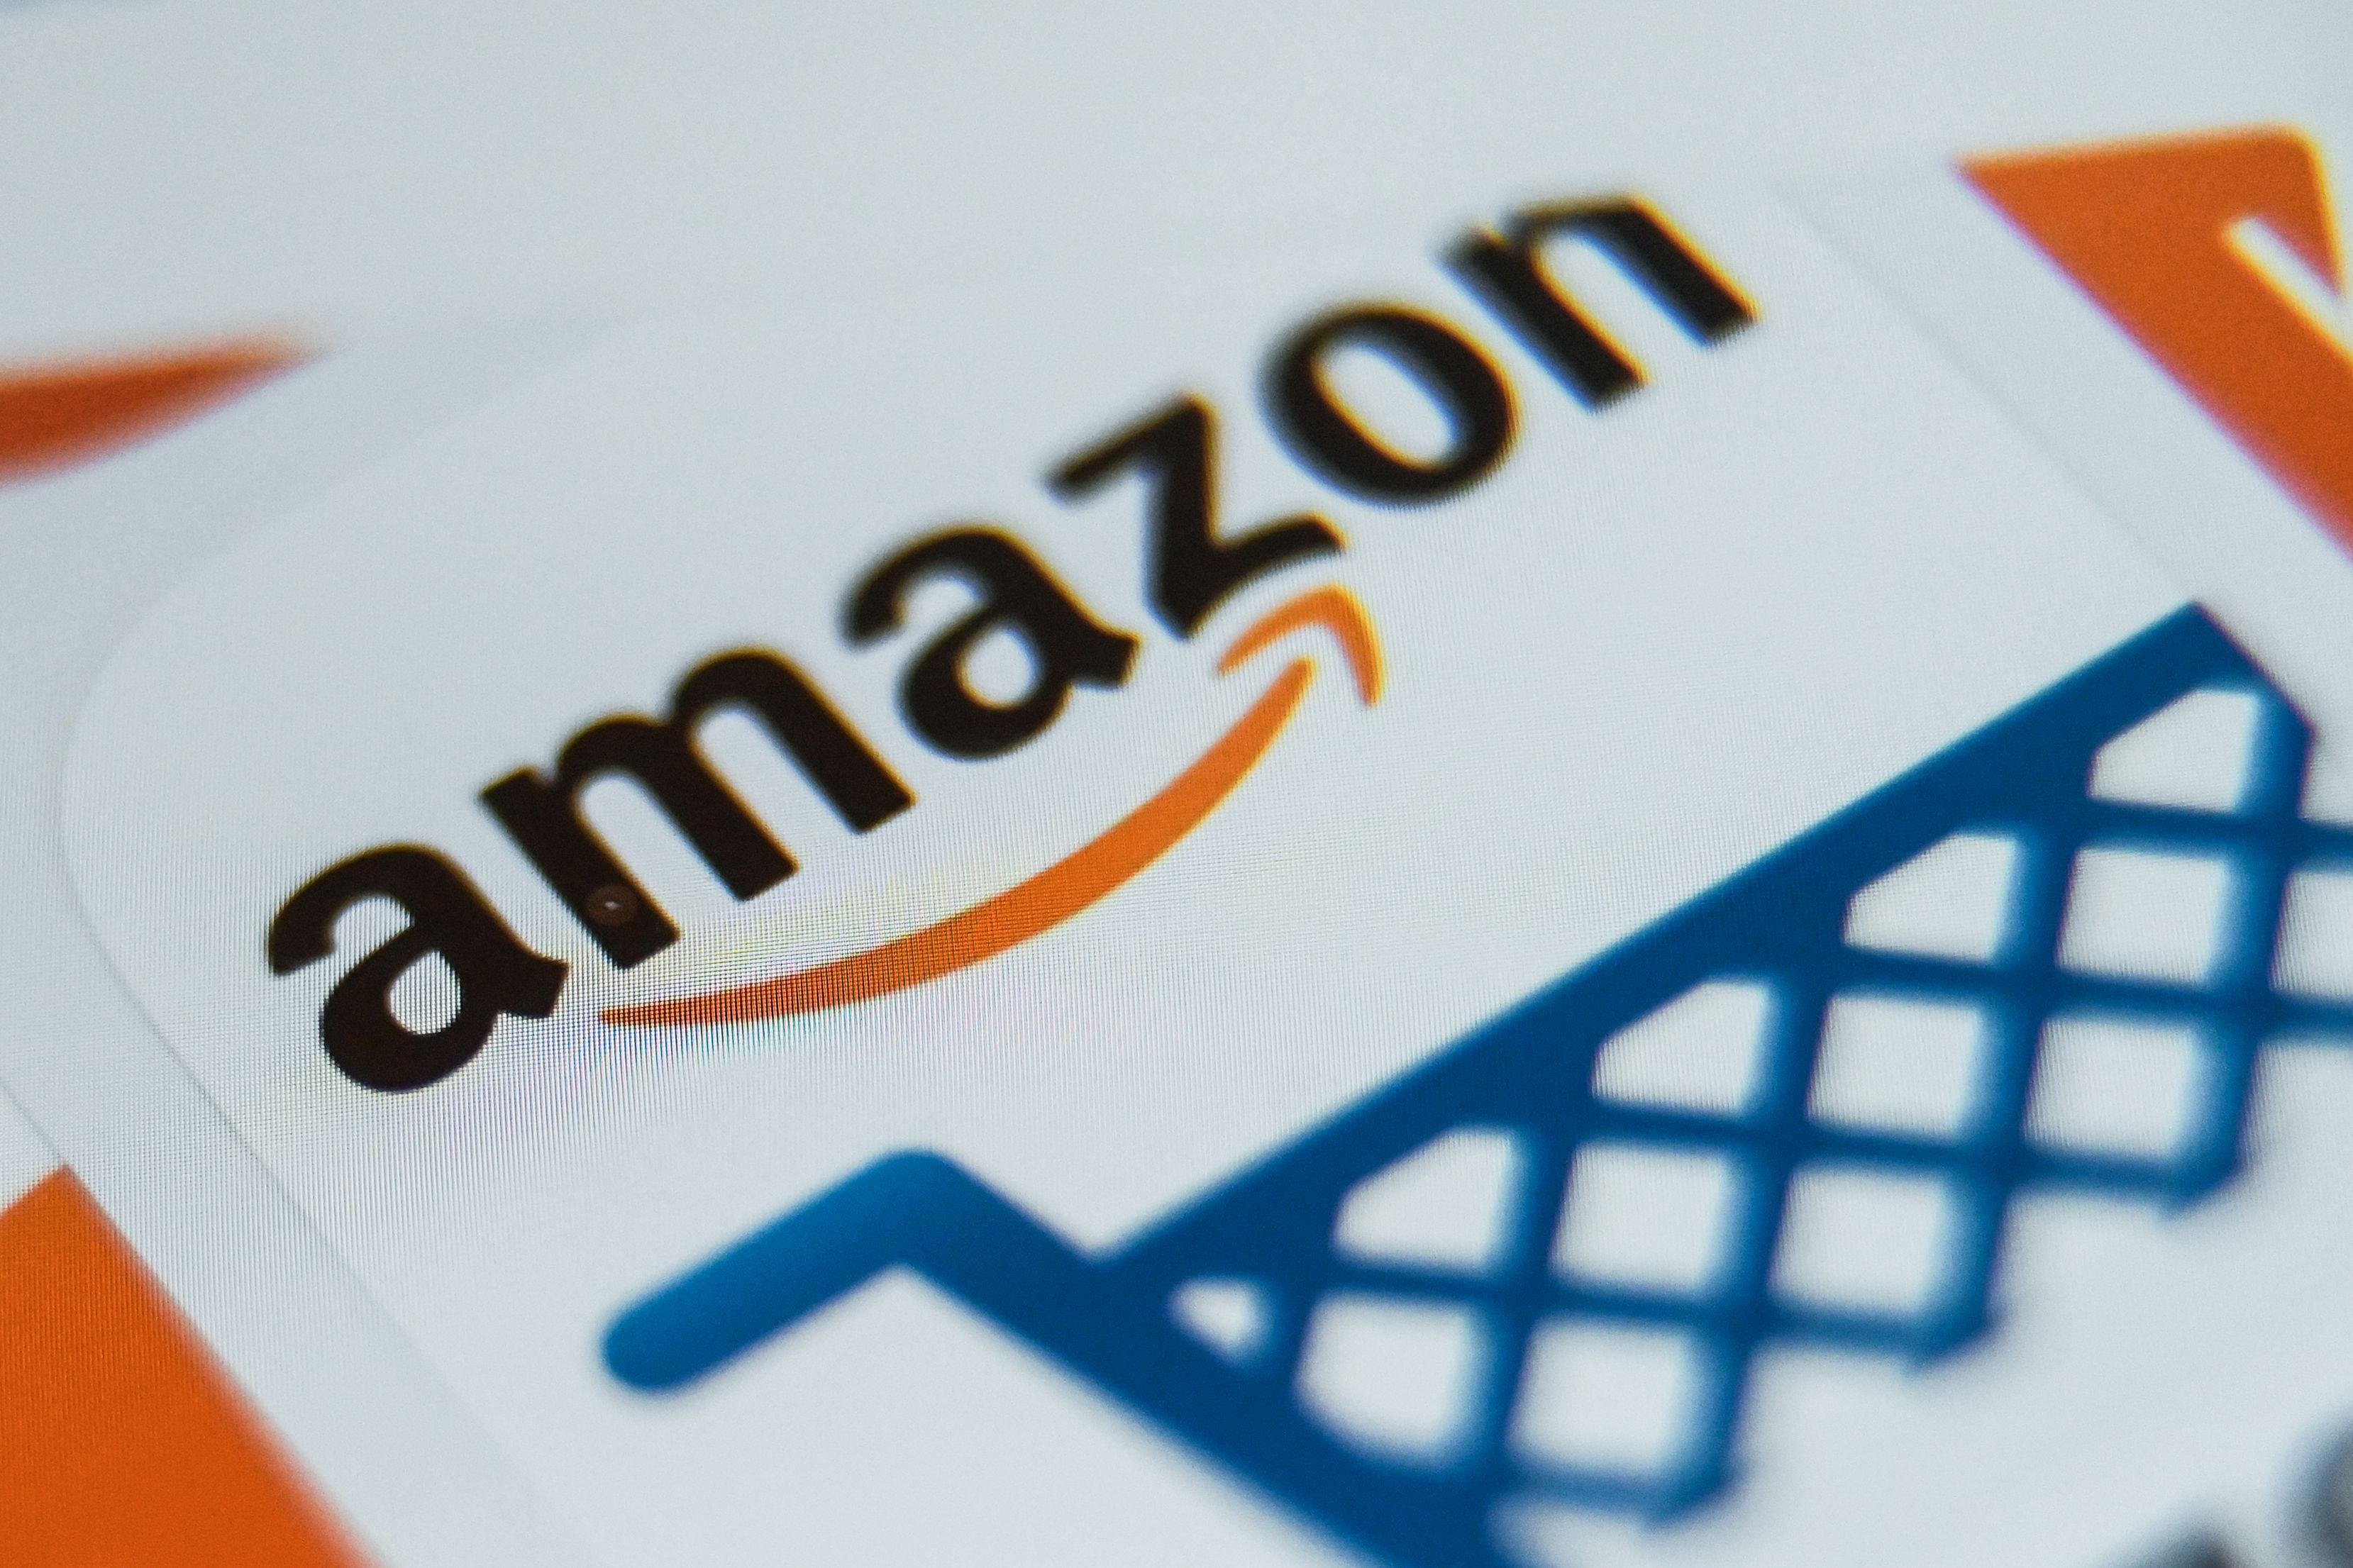 Amazon owes South Carolina for third-party sales taxes, court rules